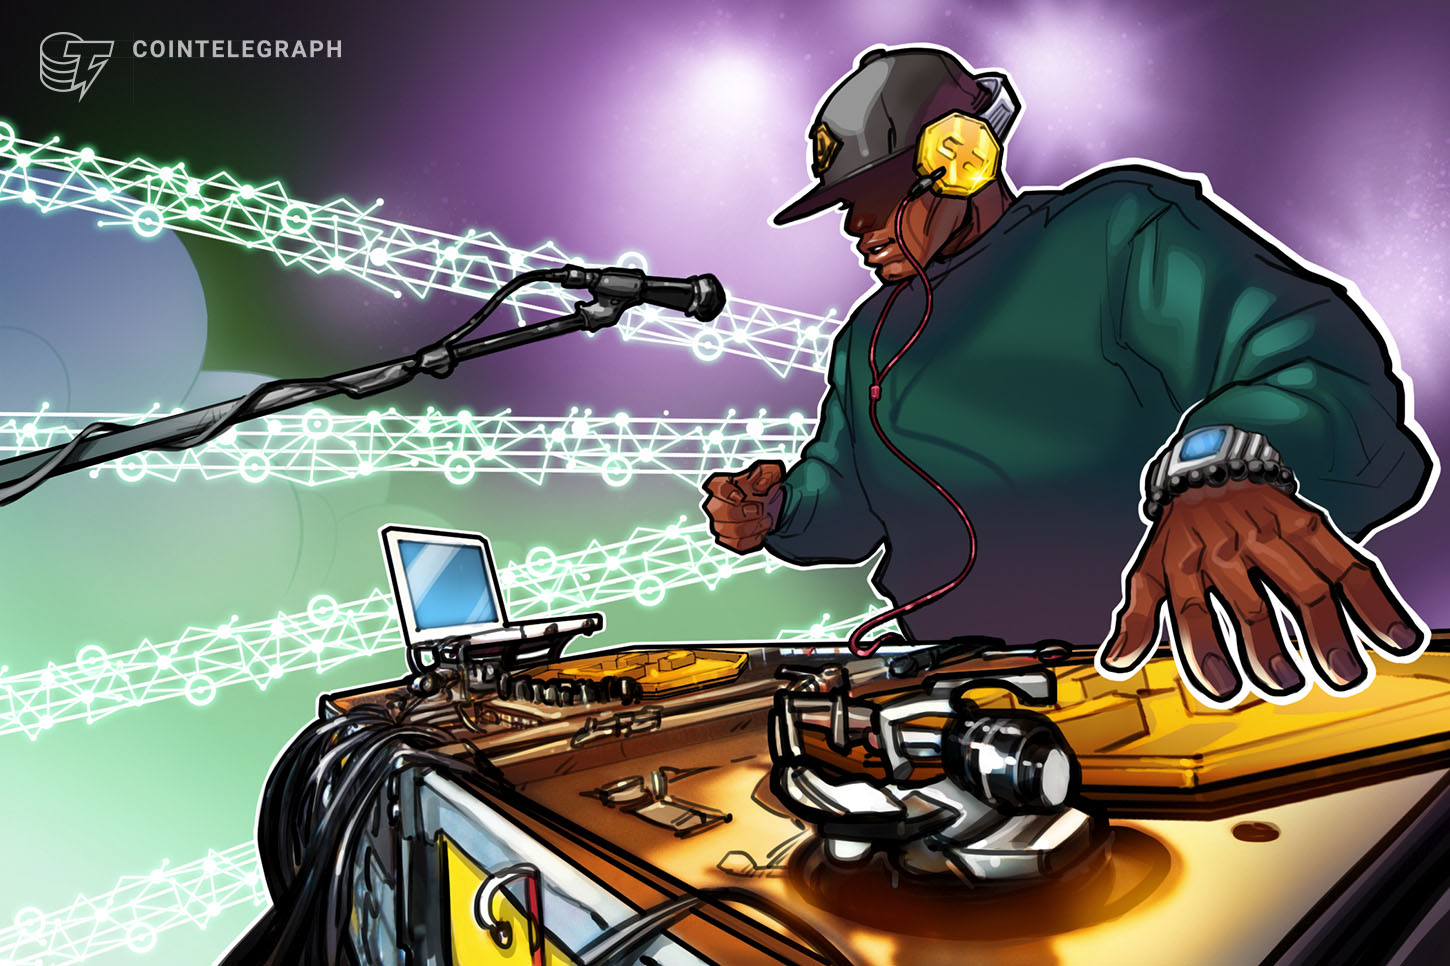 Report: Blockchain to Increase Royalty Streams to Artists in the Digital Music Industry